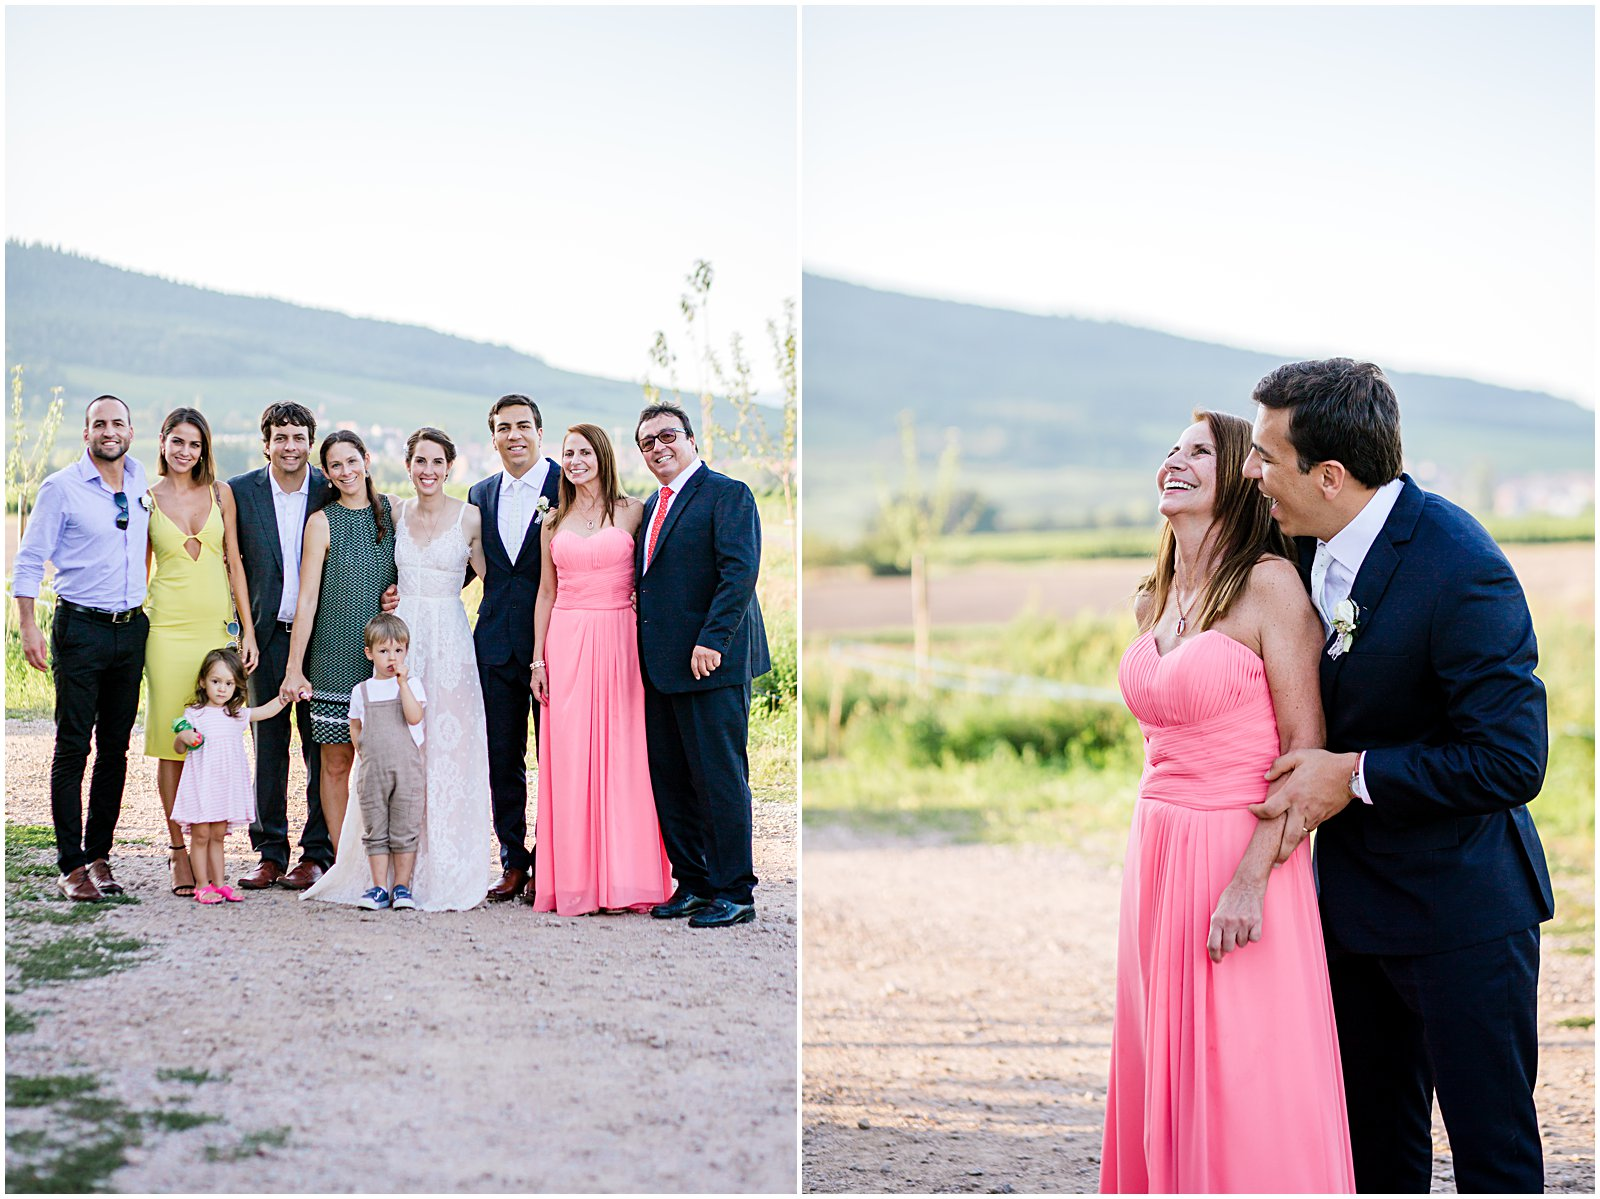 family photographed at wedding in Alsace France near Colmar by portrait wedding photographer Helena Woods